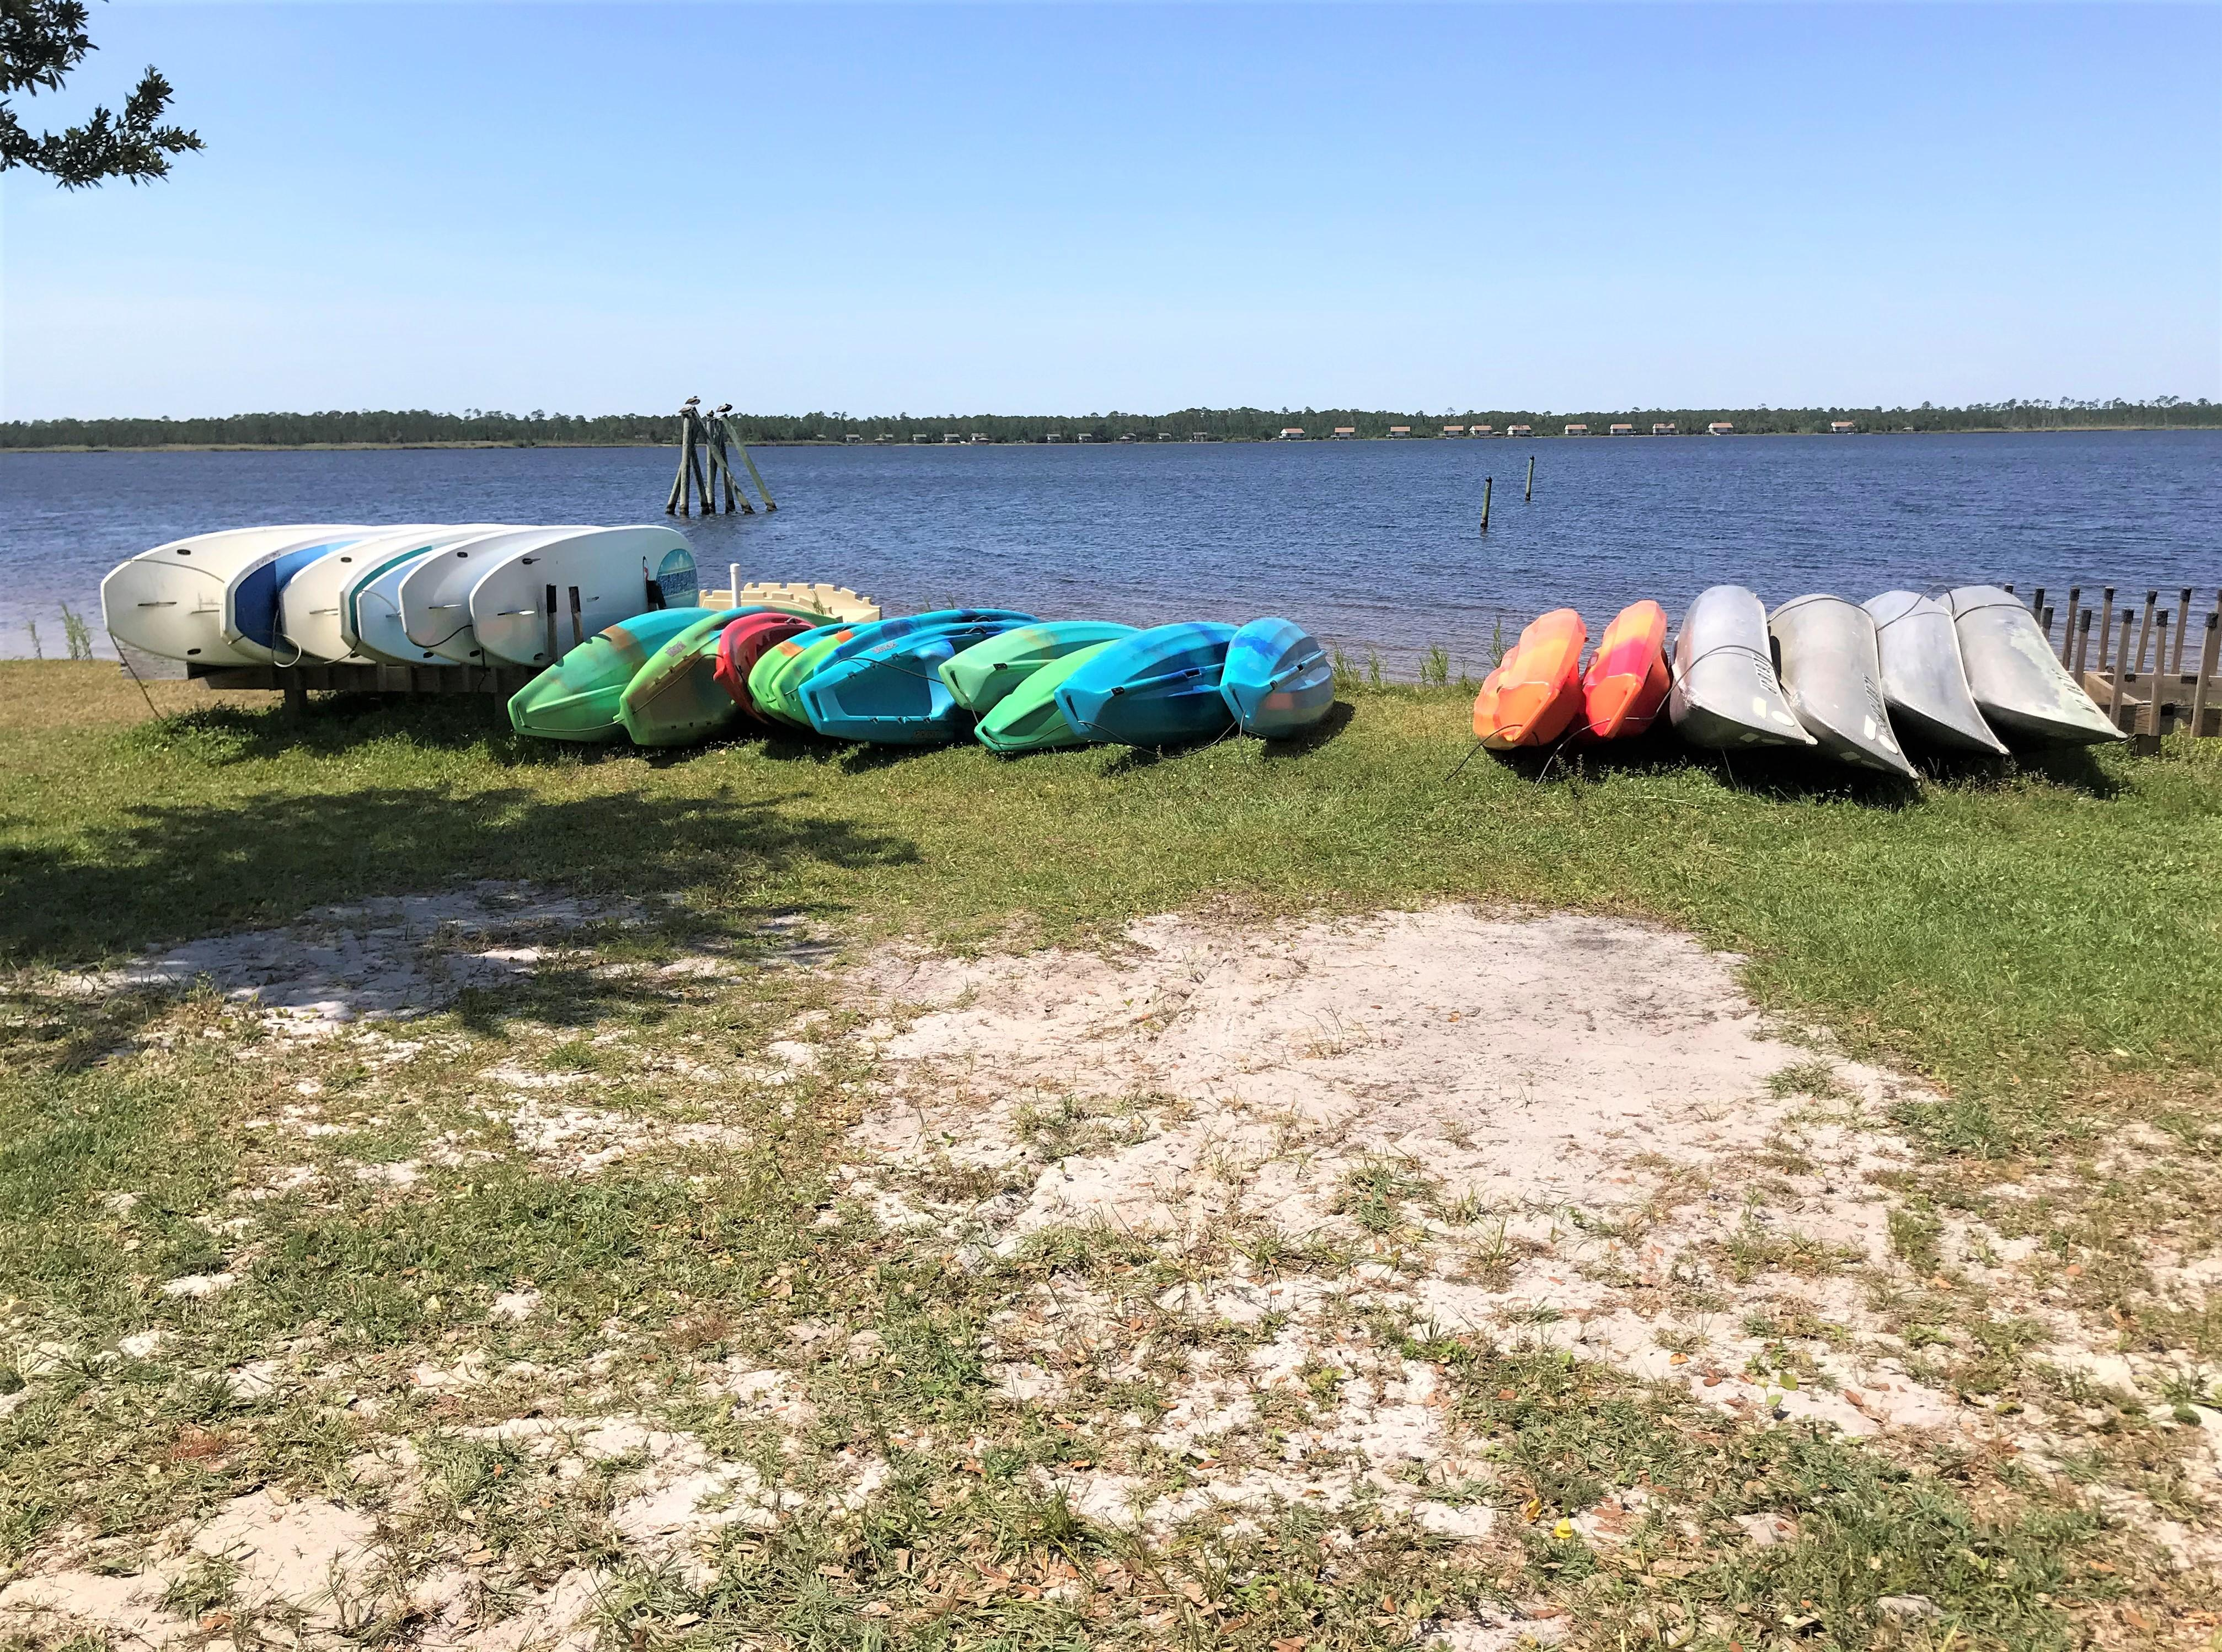 Kayak, Canoe, and Paddleboard Rentals Available at Lake Shelby